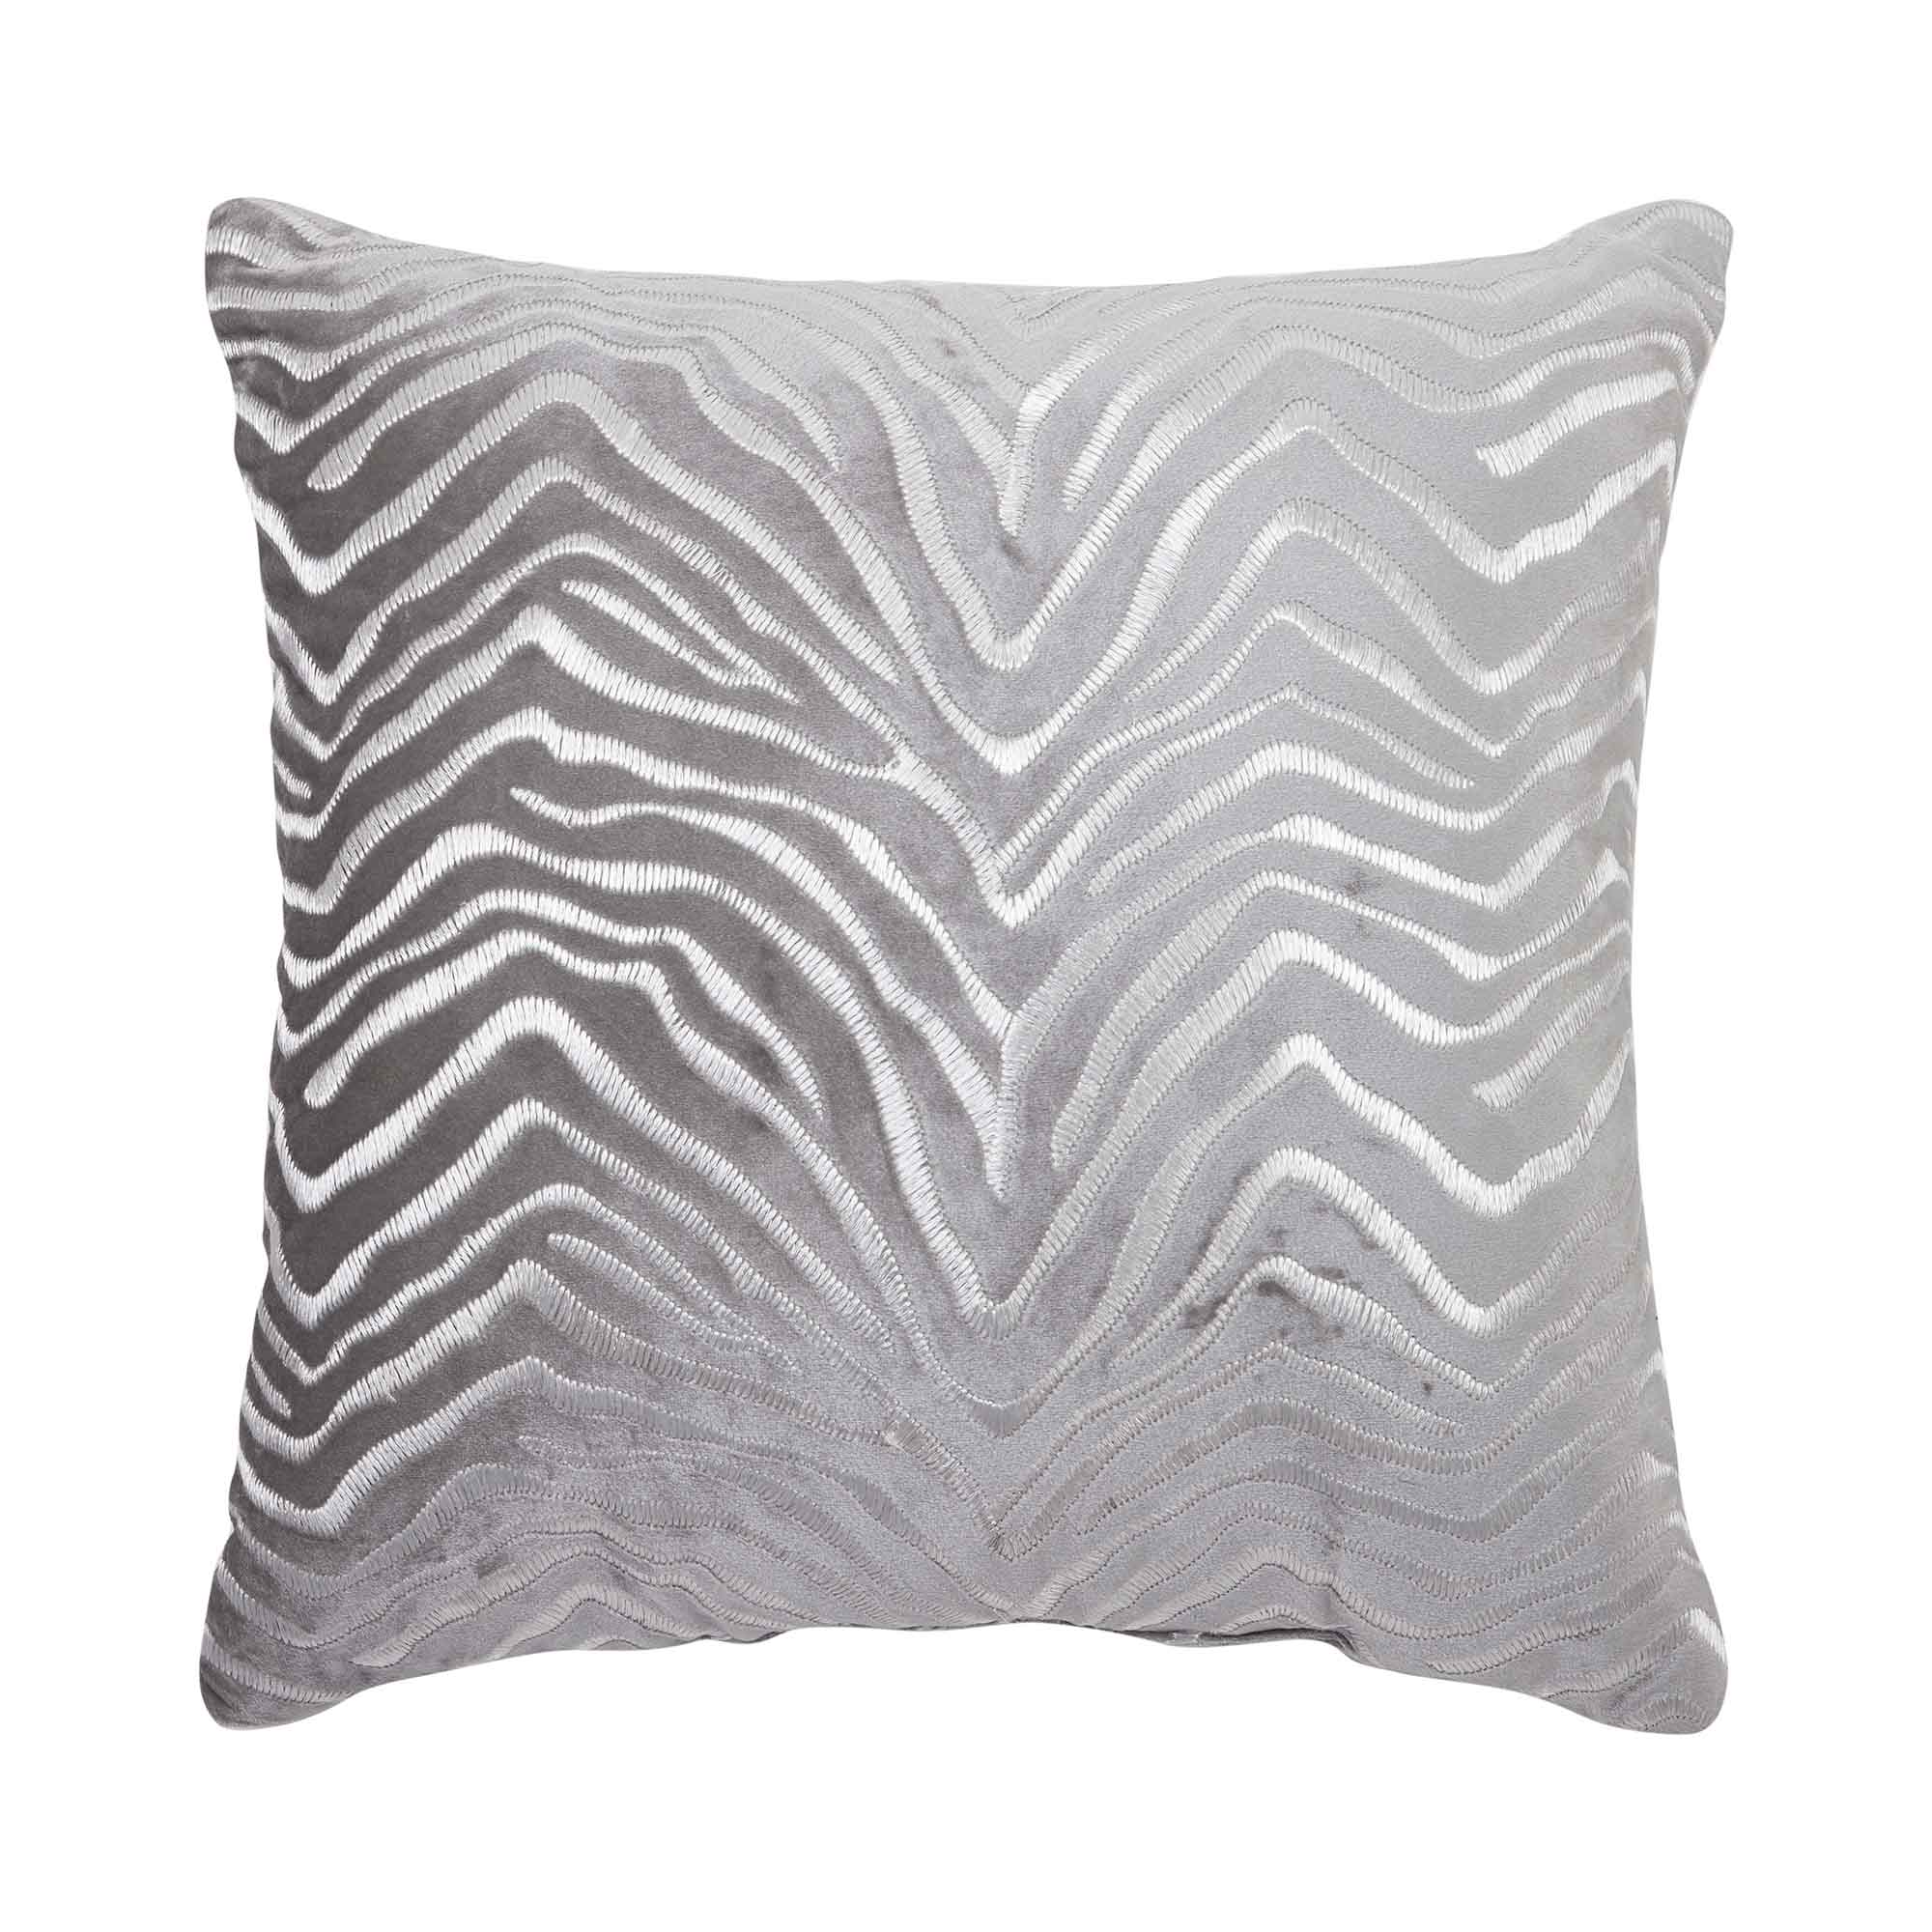 "Nova Silver Fashion Throw Pillow 18"" x 18"" [Luxury comforter Sets] [by Latest Bedding]"